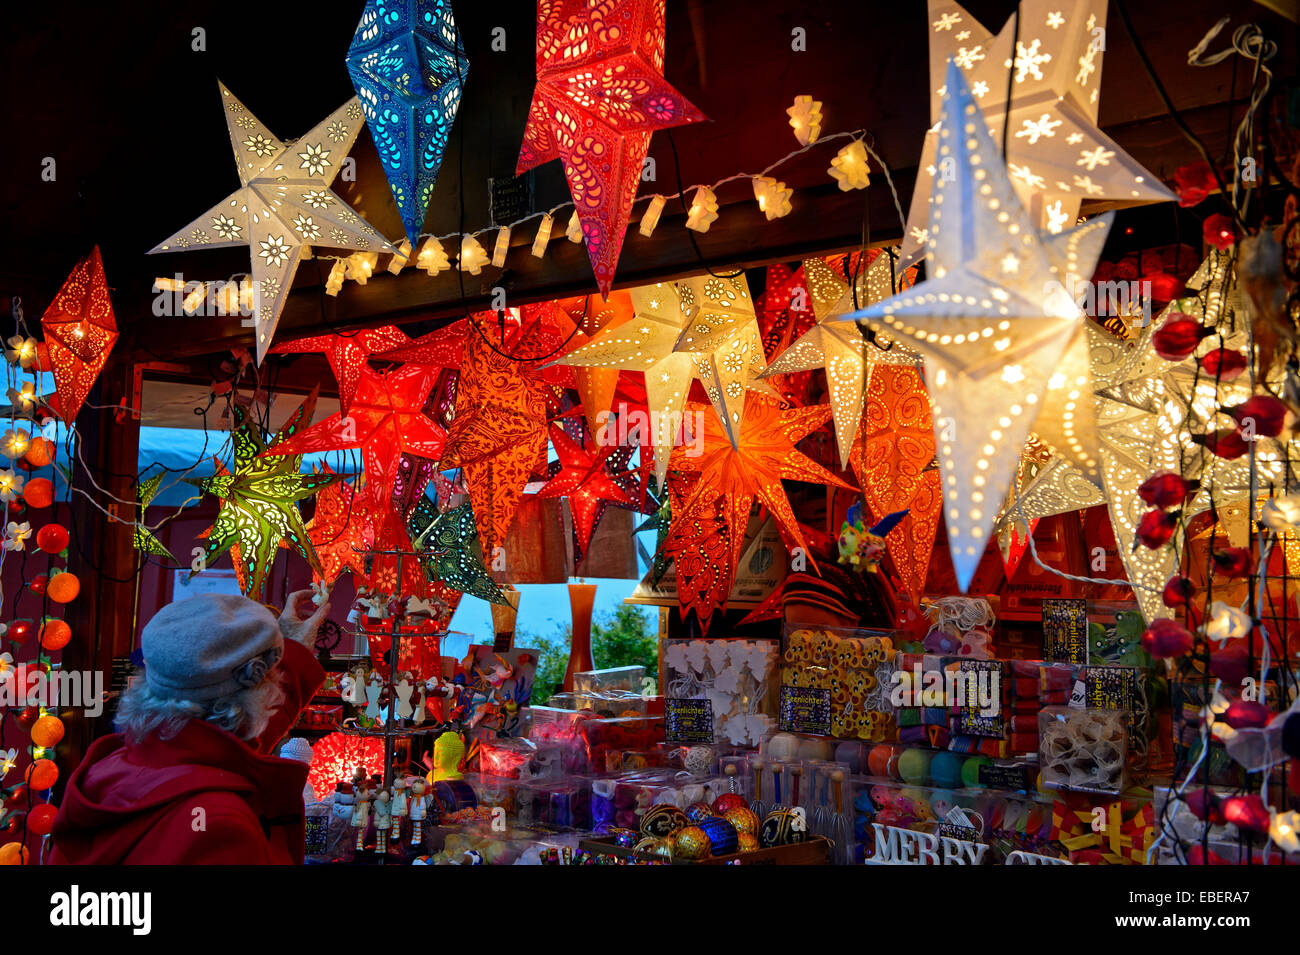 Montreux, Switzerland. 29th November, 2014. The annual Christmas Market in Montreux celebrates its 20 years from - Stock Image